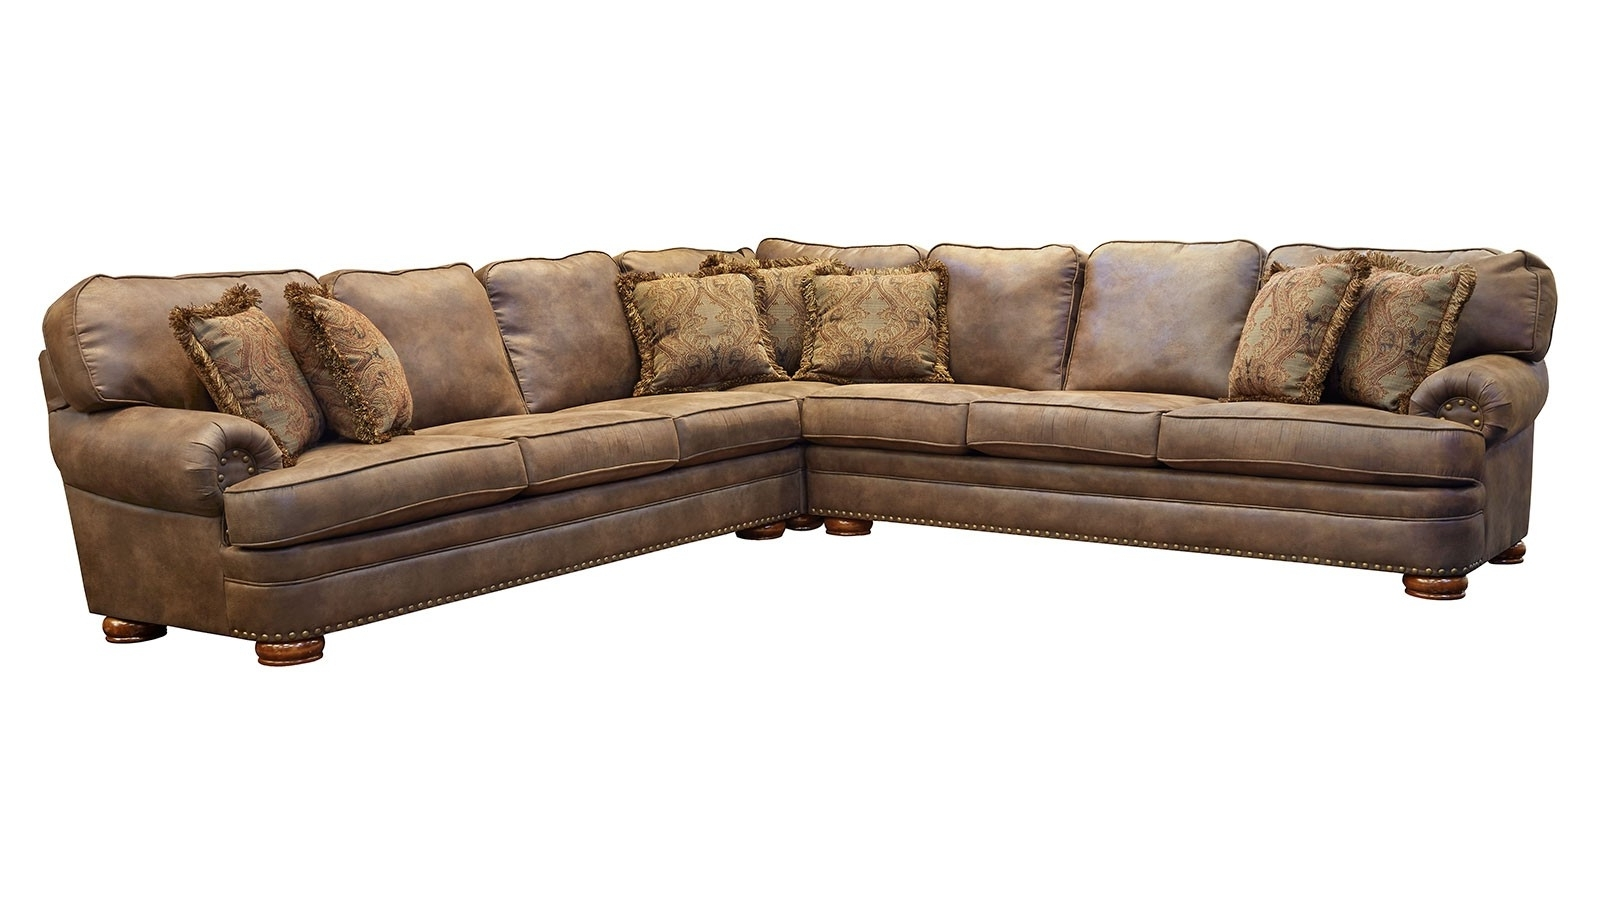 Gallery Furniture With El Paso Sectional Sofas (View 1 of 15)